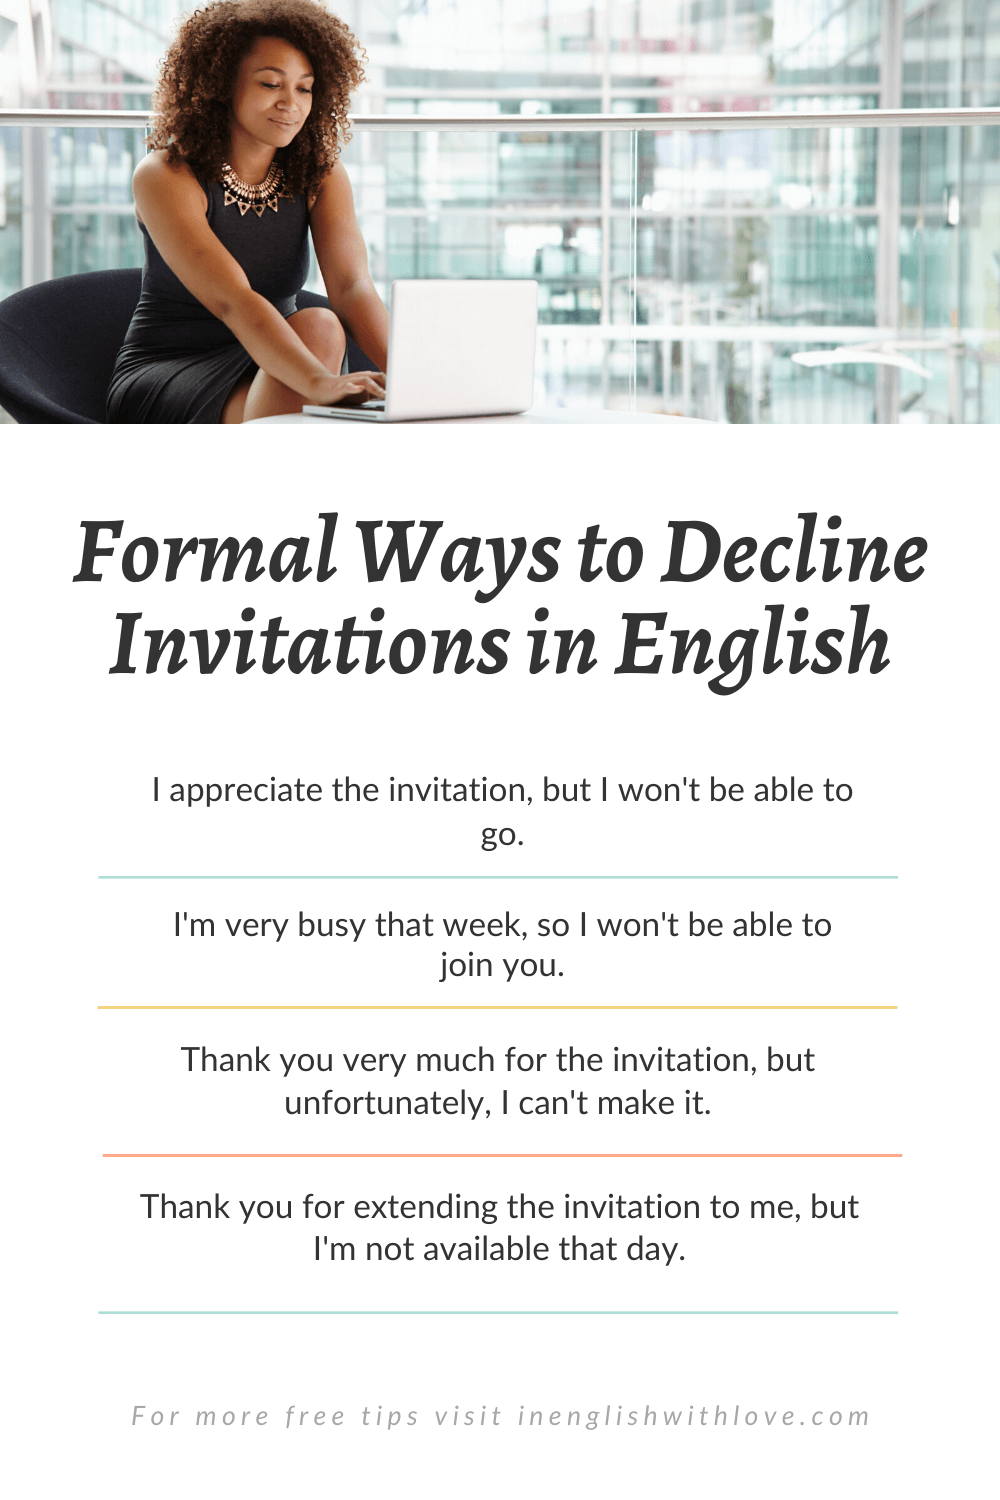 how to decline an invitation in english